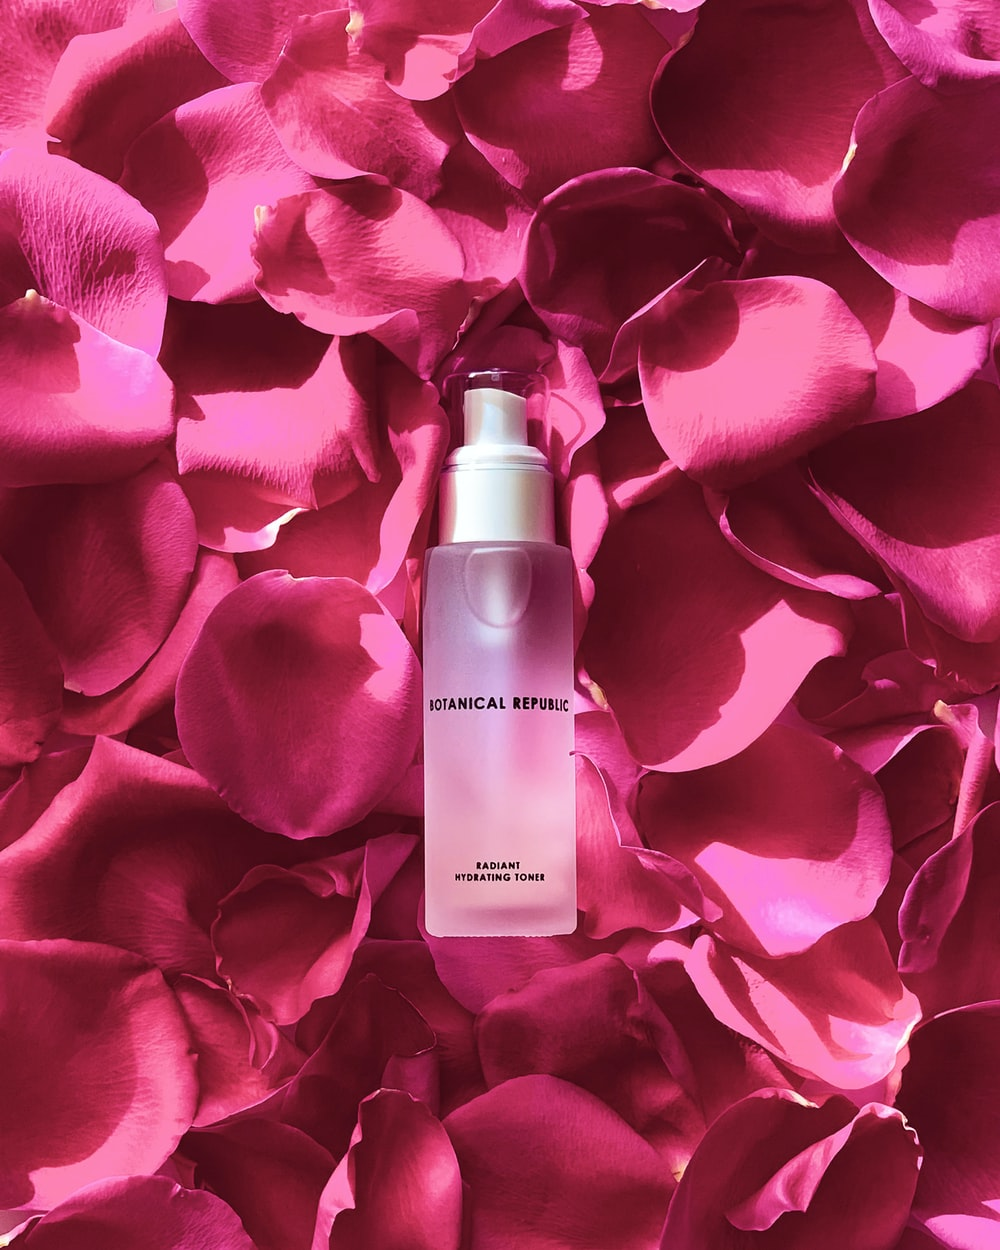 pink and white perfume bottle on red rose